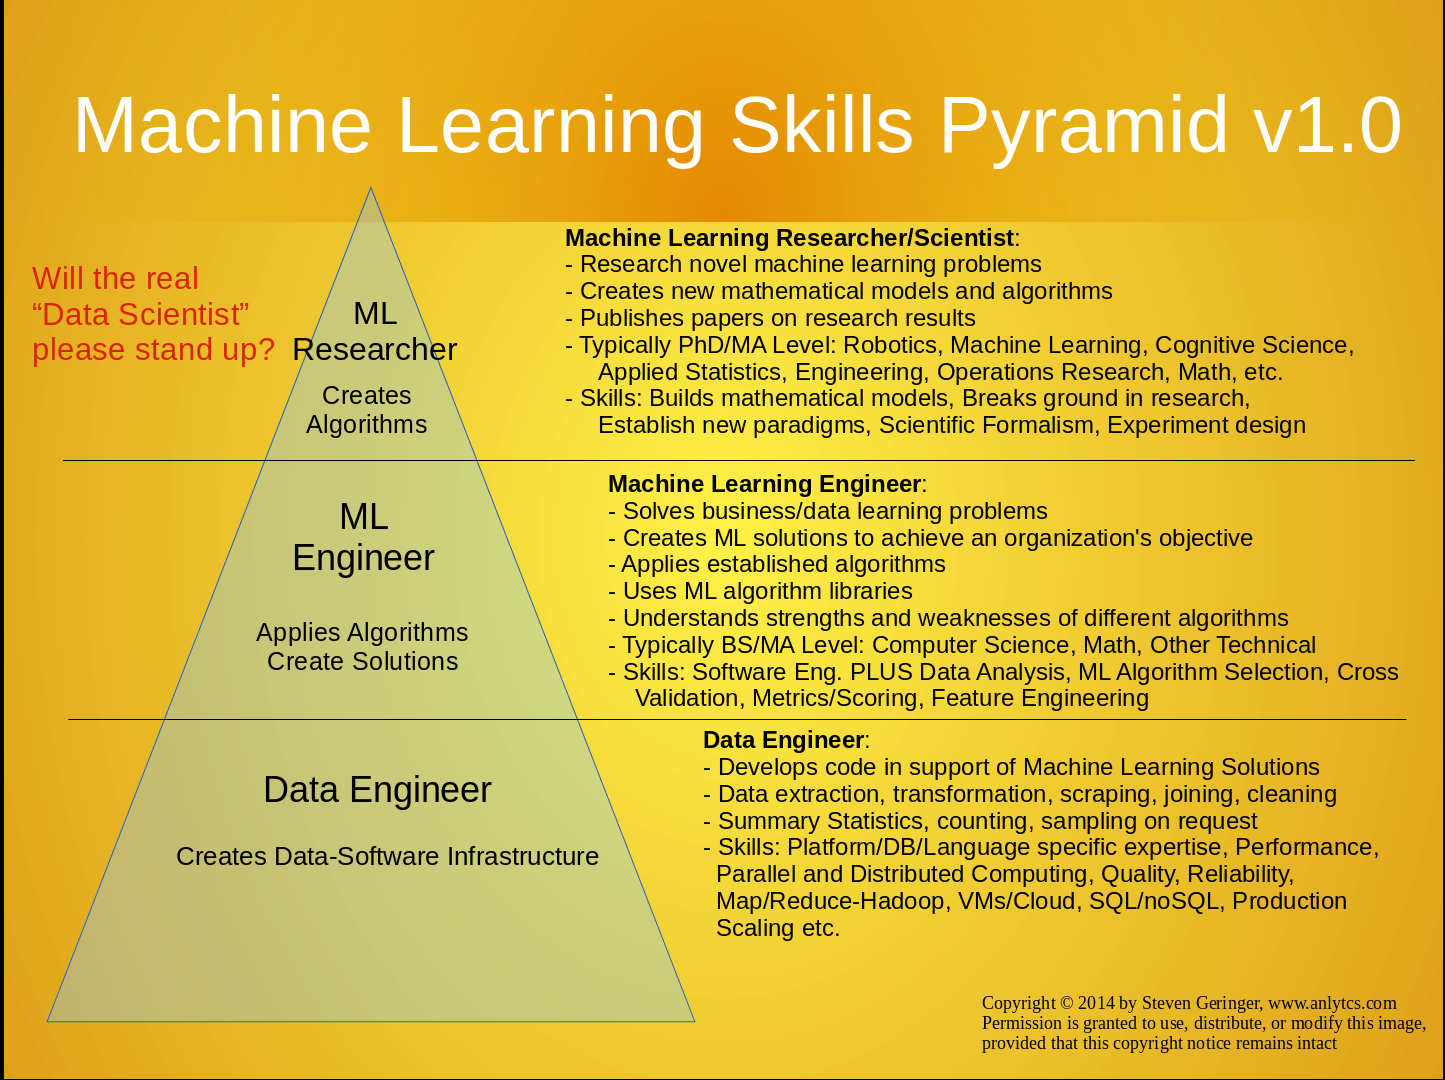 Steve blank startup tools machine learning skills fandeluxe